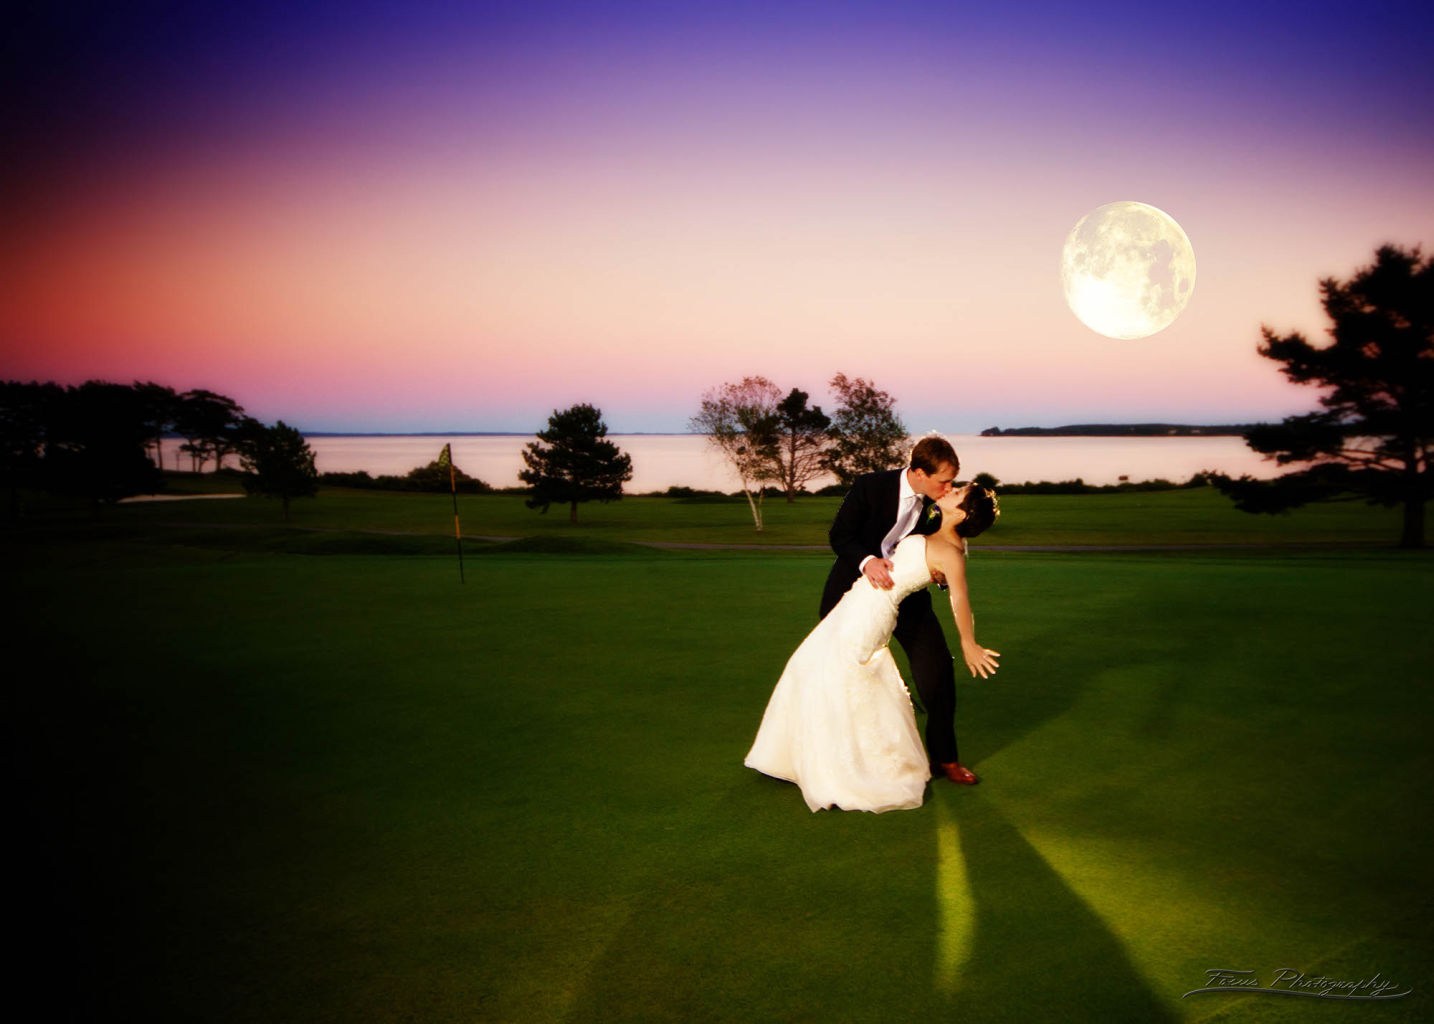 The bride and groom dance in the moonlight at the Samoset Resort